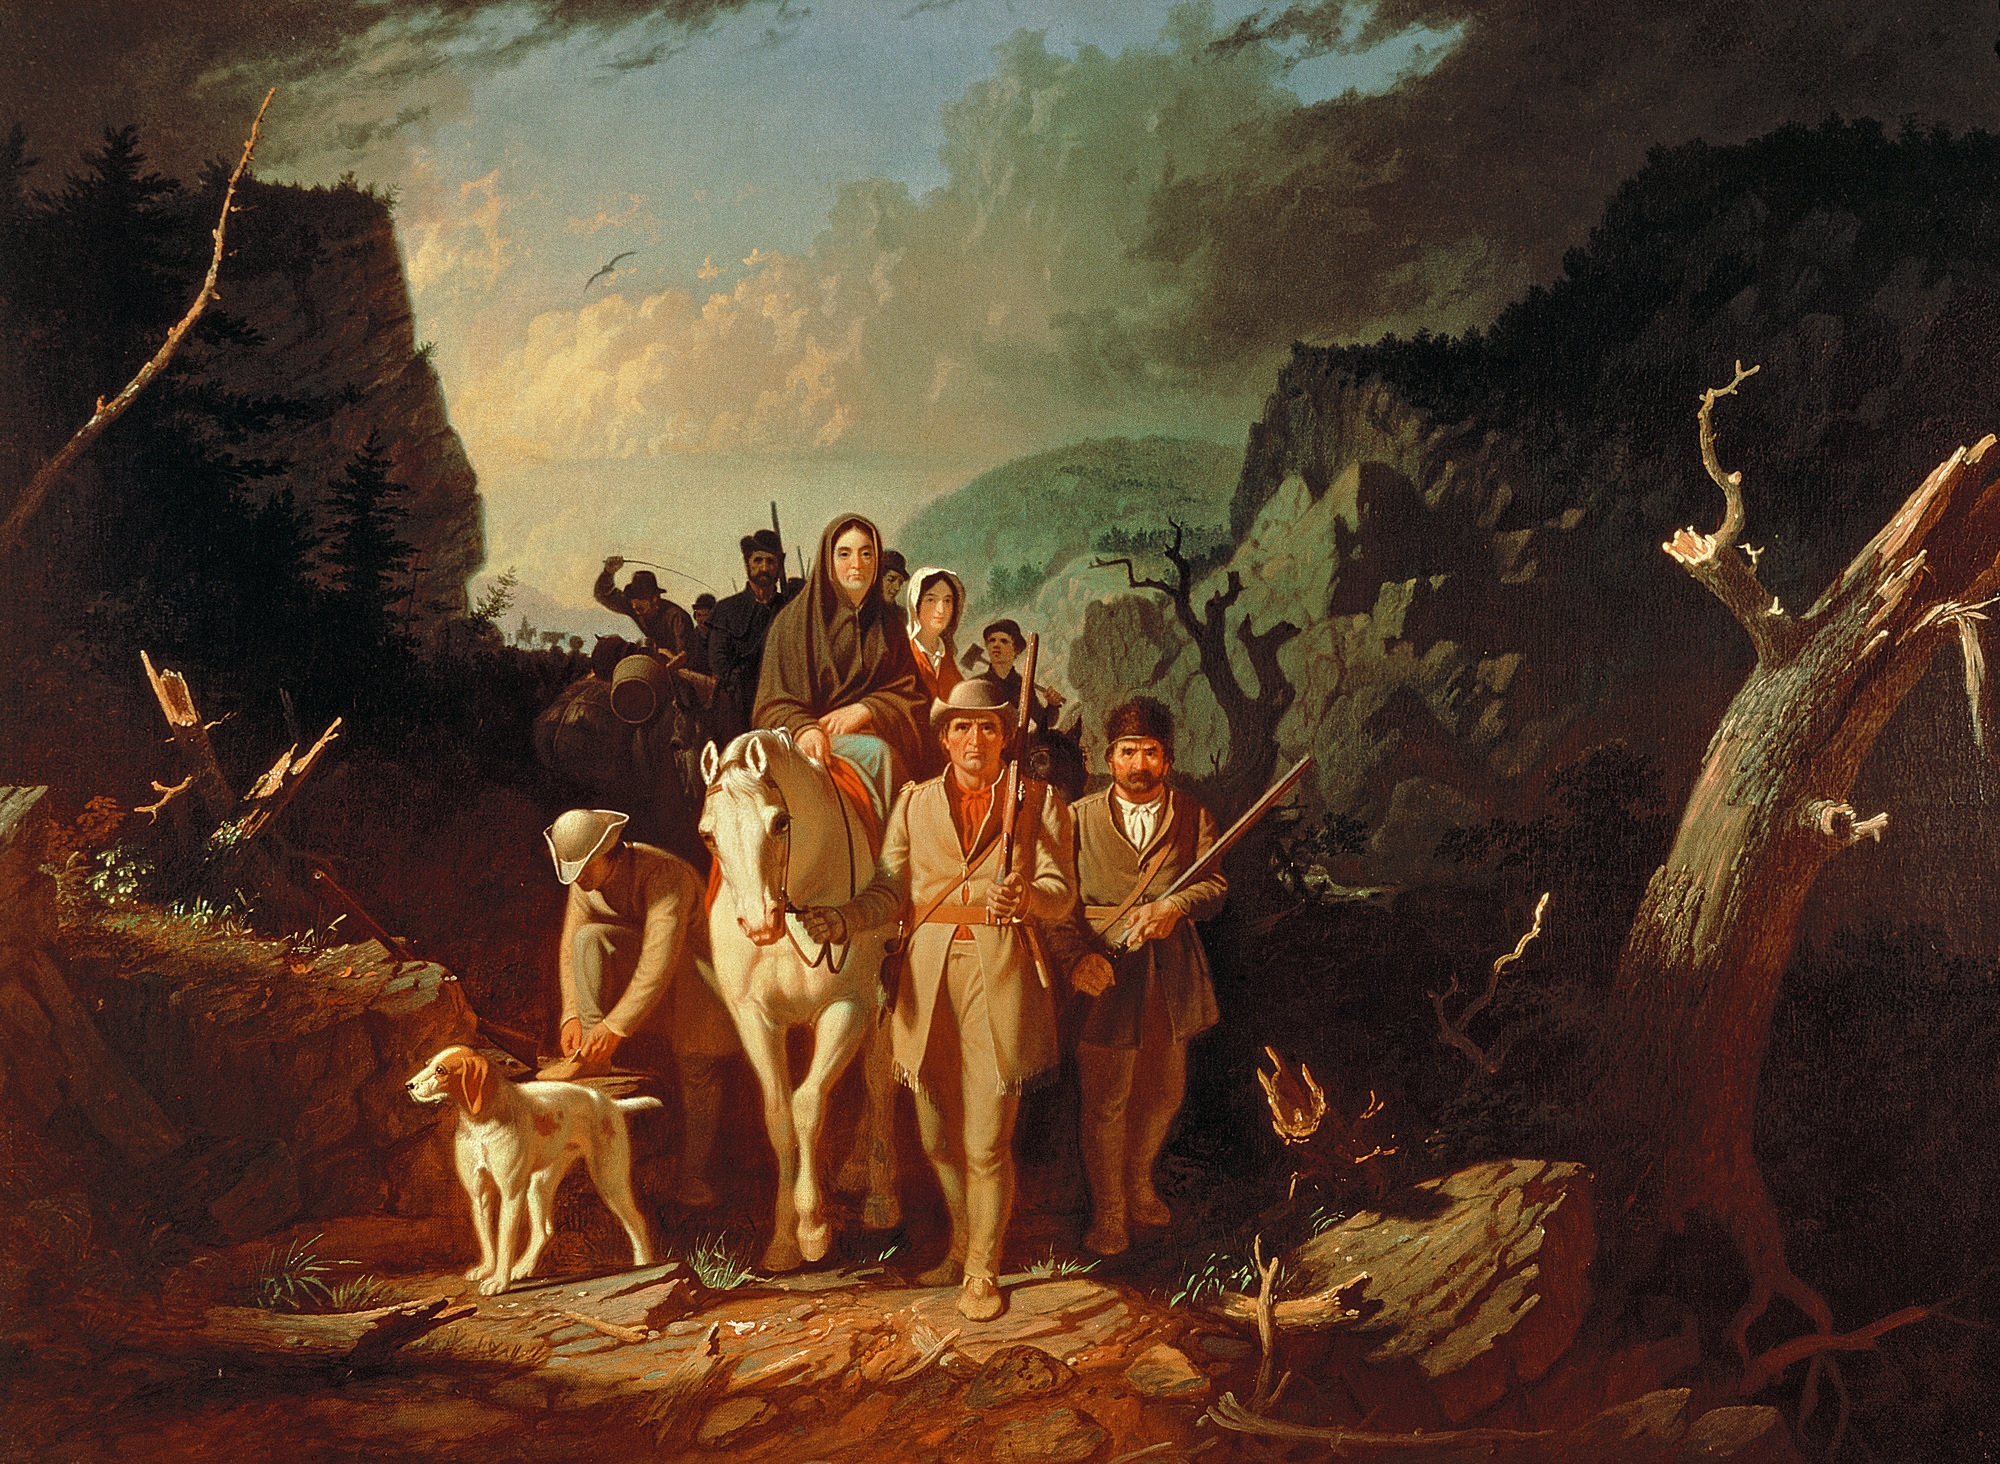 Daniel Boone Escorting Settlers Through the Cumberland Gap  by George Caleb Bingham, 1851-1852